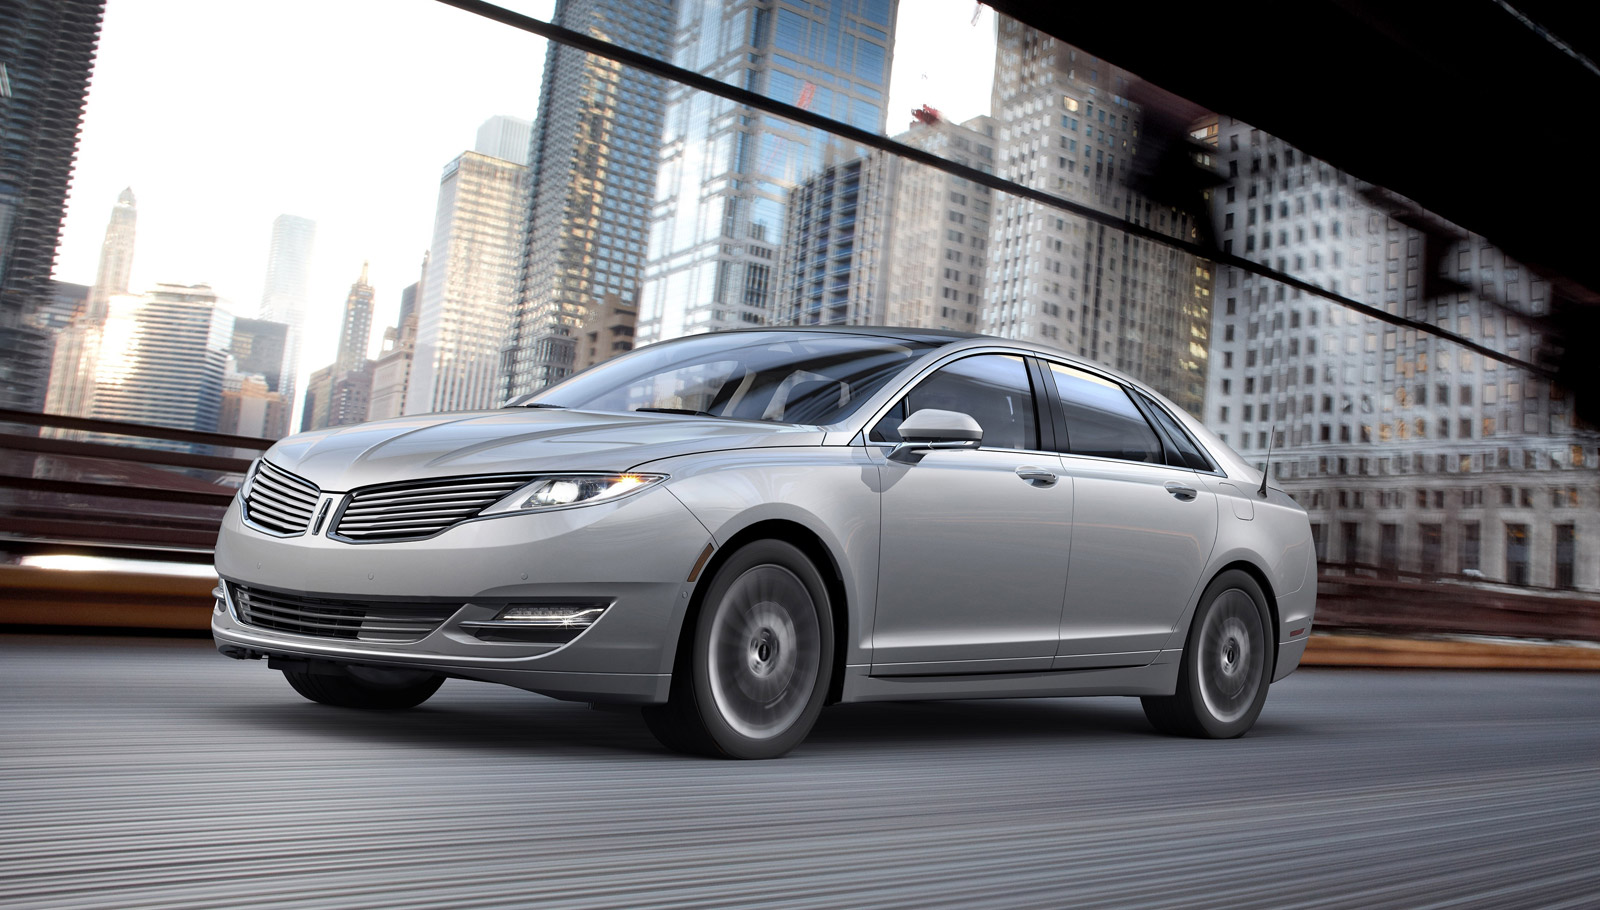 hight resolution of electric car apps lincoln mkz hybrid recall carbon fiber conundrum today s car news